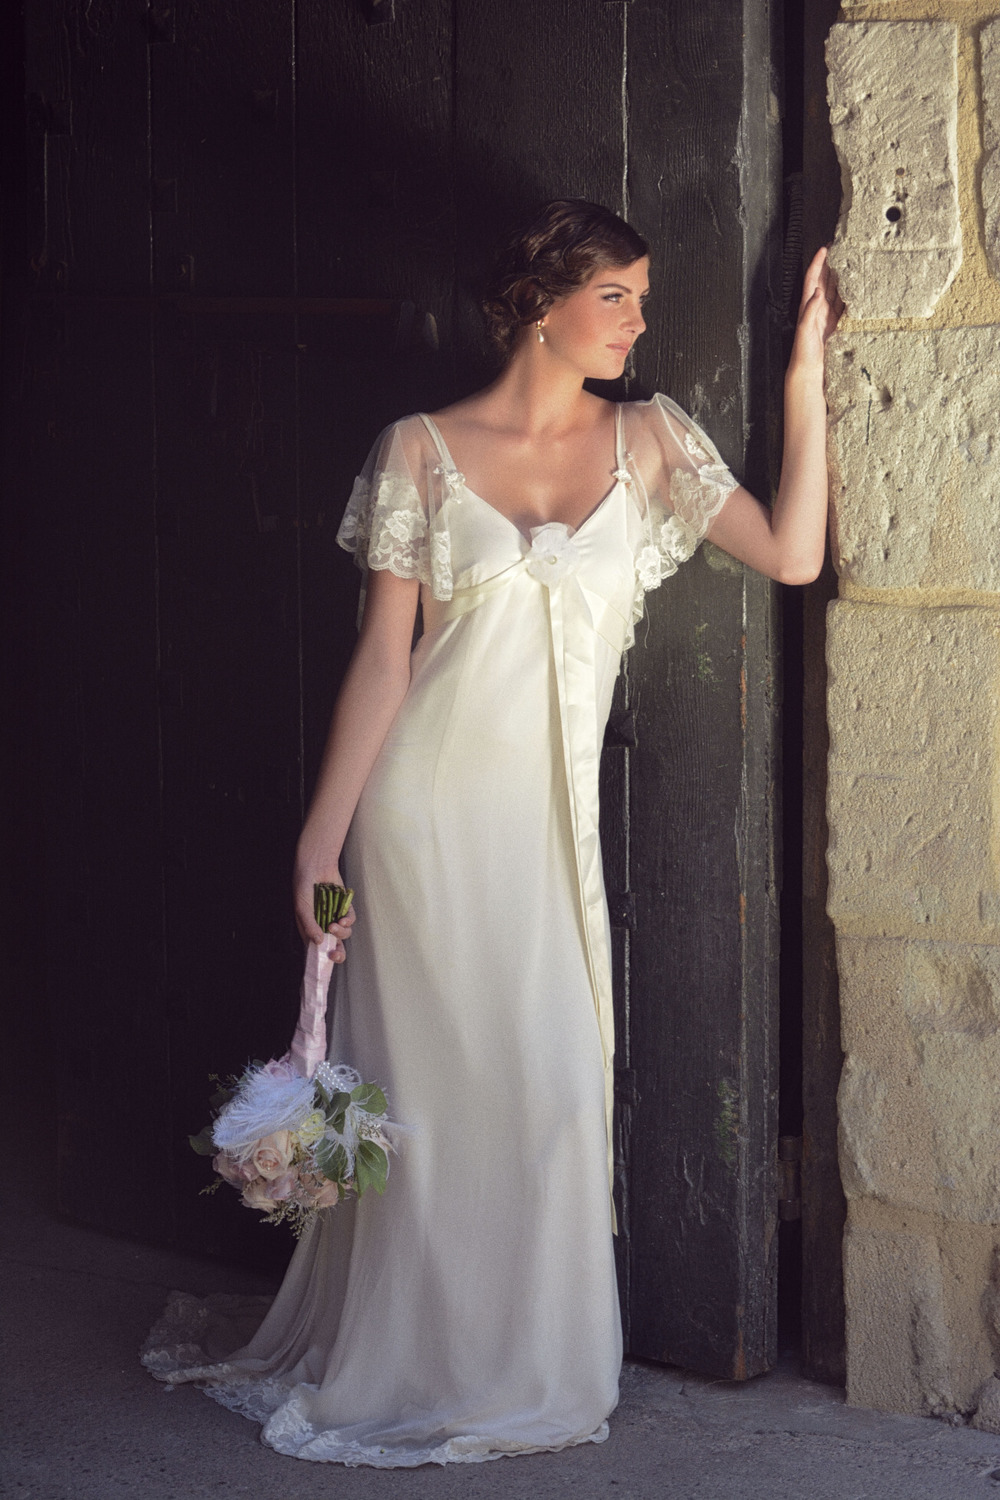 Cosette Wedding Gown: Silk chiffon empire cut evening gown silhouette with butterfly style sleeves trimmed in Chantilly lace. From Amy Jo Tatum Bridal Couture